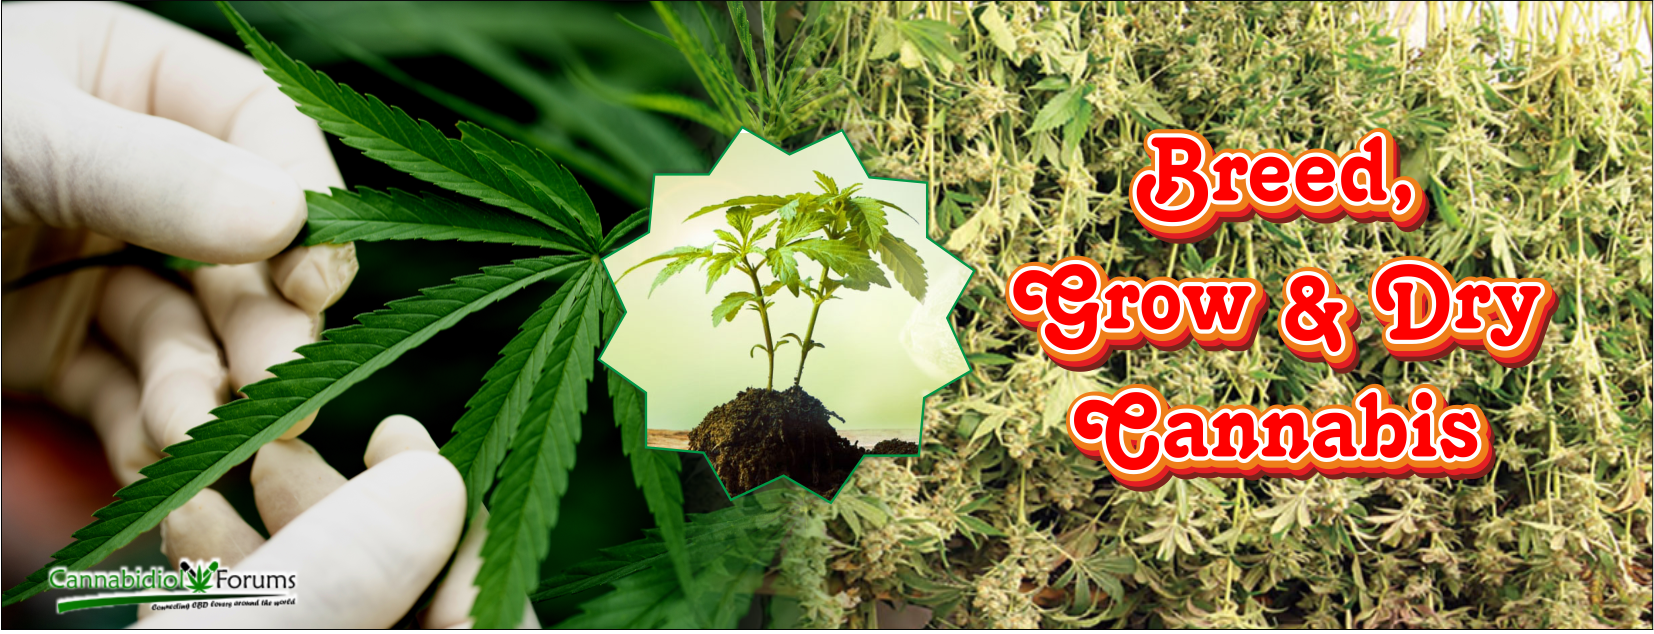 [Image: how-to-breed-grow-and-dry-cannabis.png]